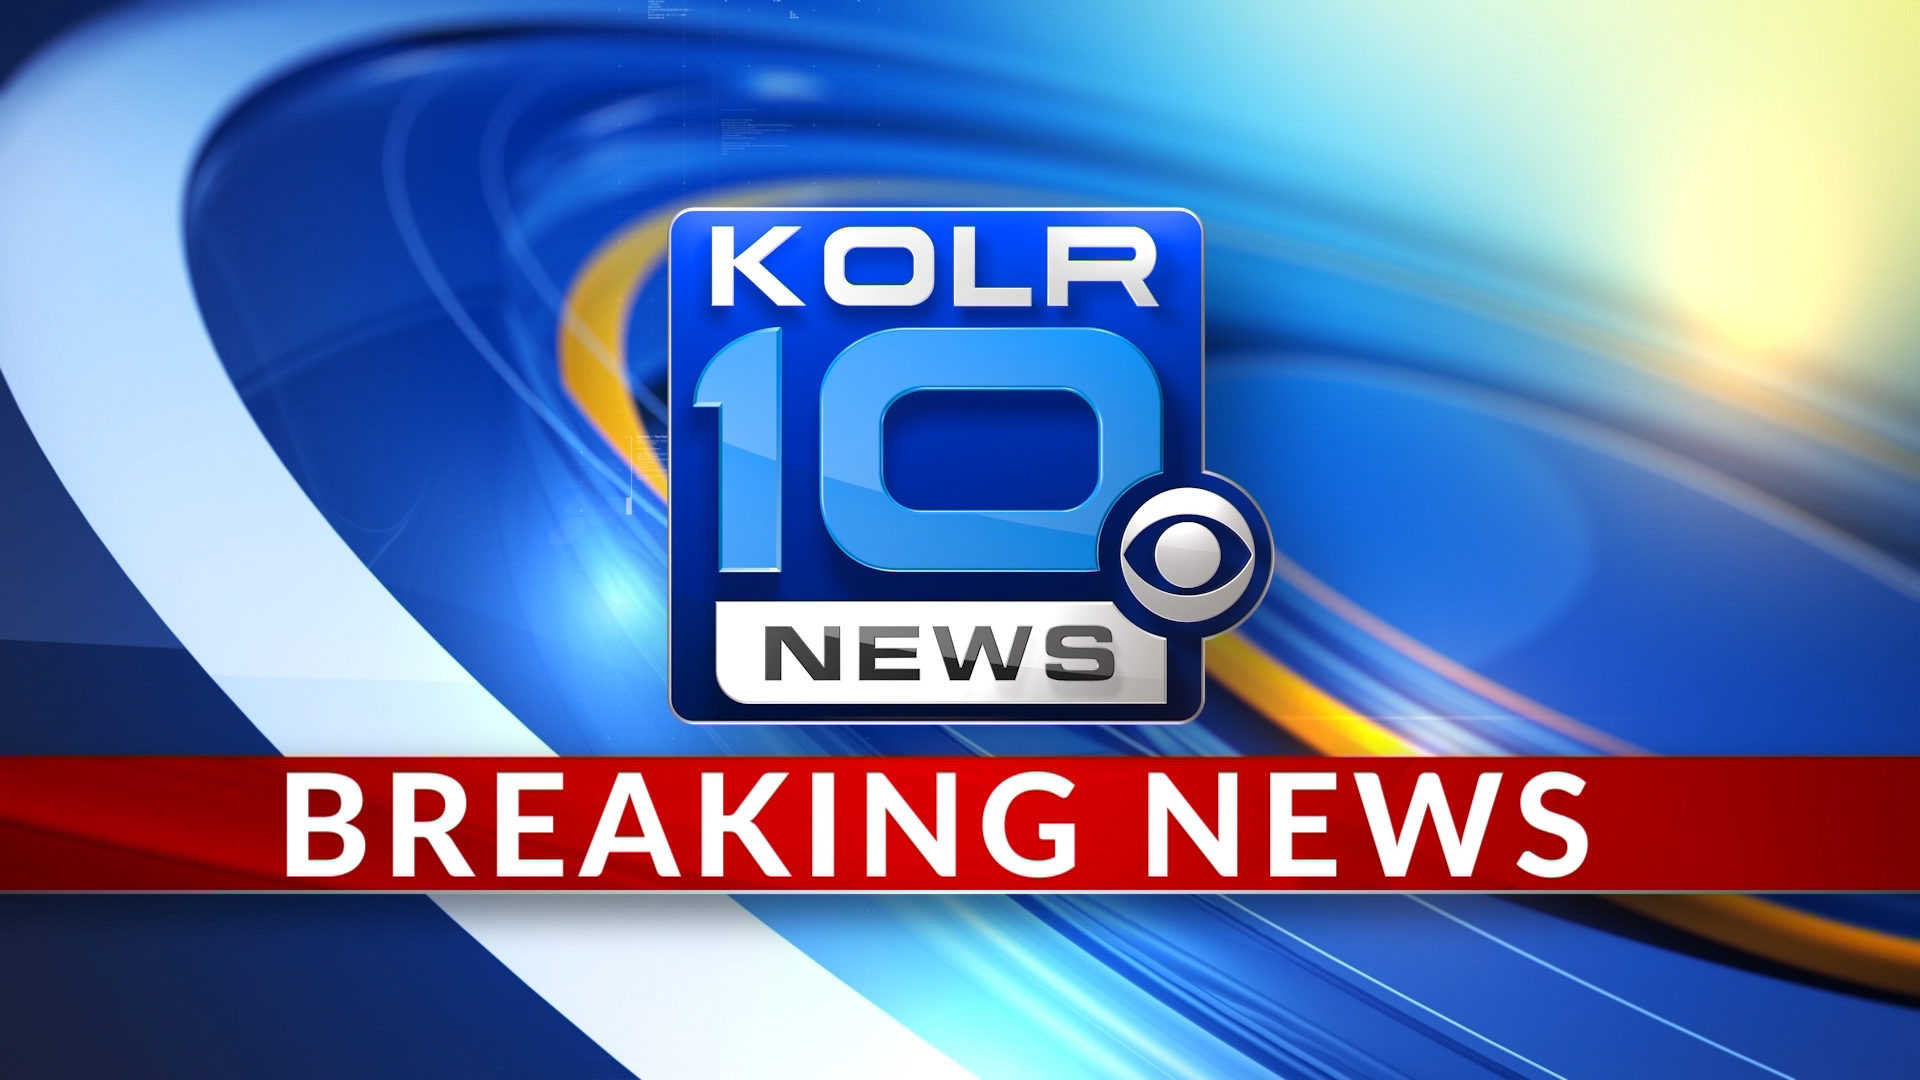 BREAKING: Officials confirm fatal shooting on Walnut and Grant